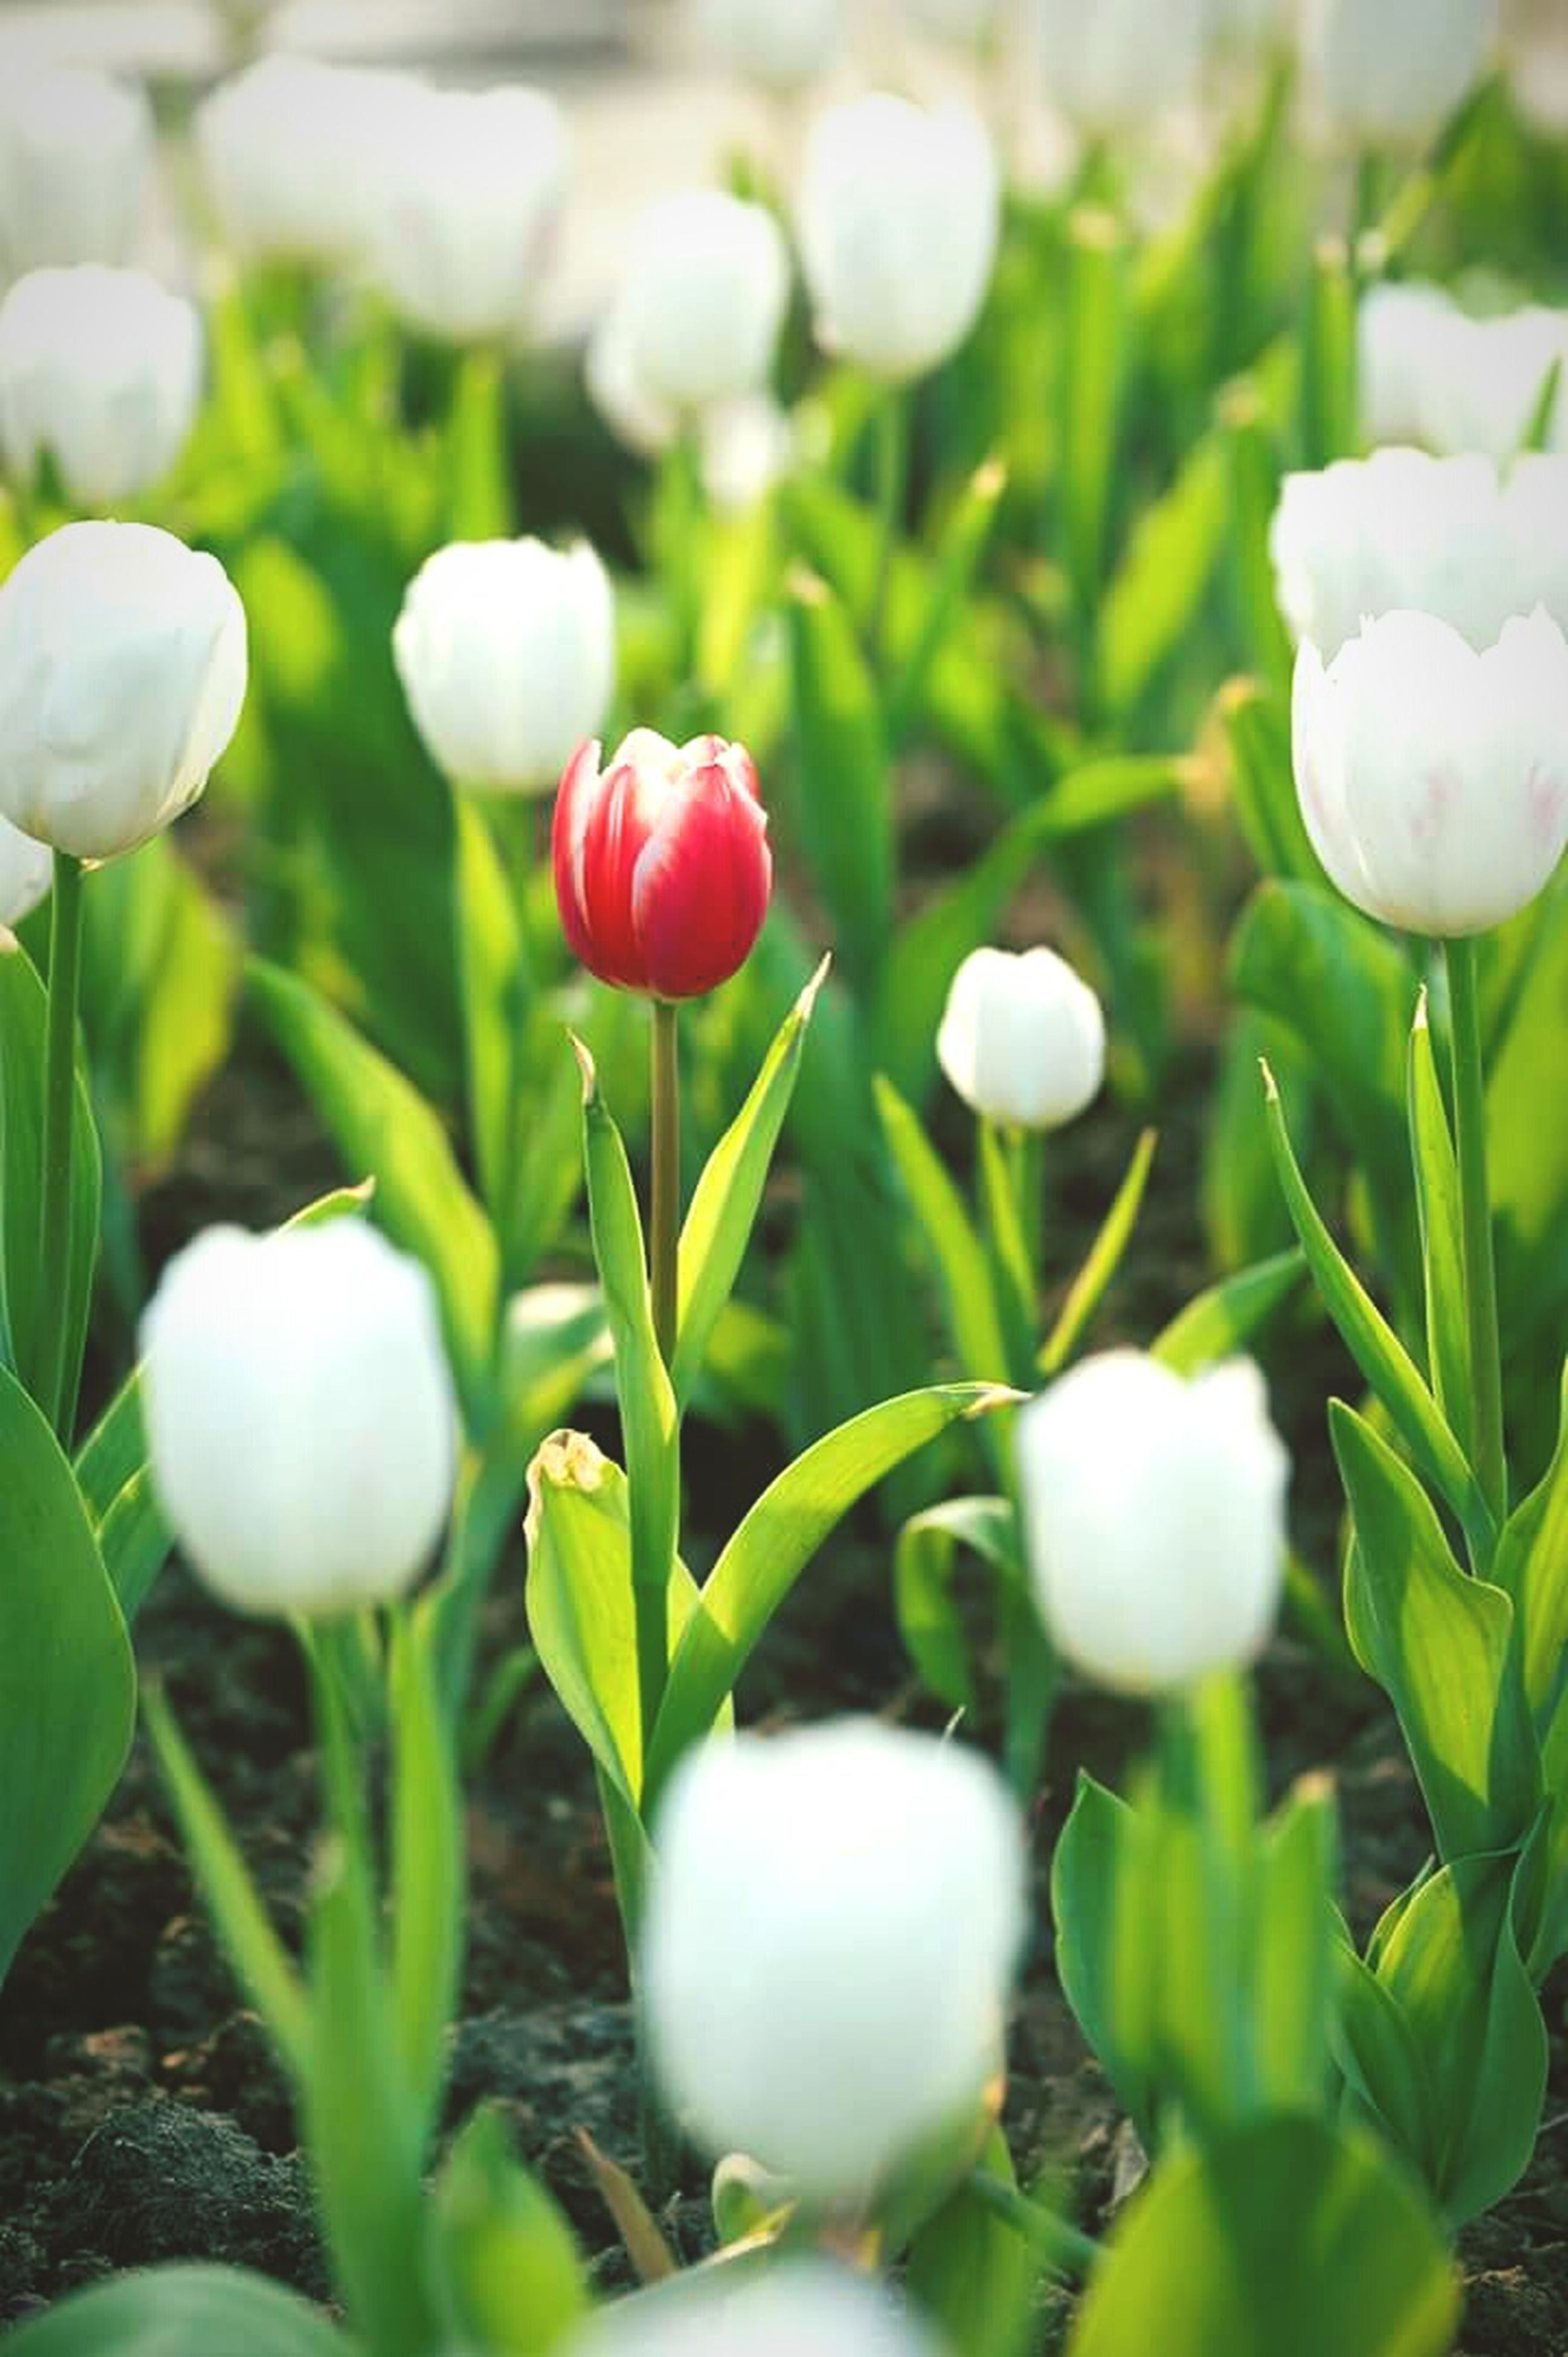 flower, freshness, petal, growth, fragility, flower head, beauty in nature, white color, plant, nature, bud, blooming, close-up, stem, focus on foreground, in bloom, field, tulip, leaf, green color